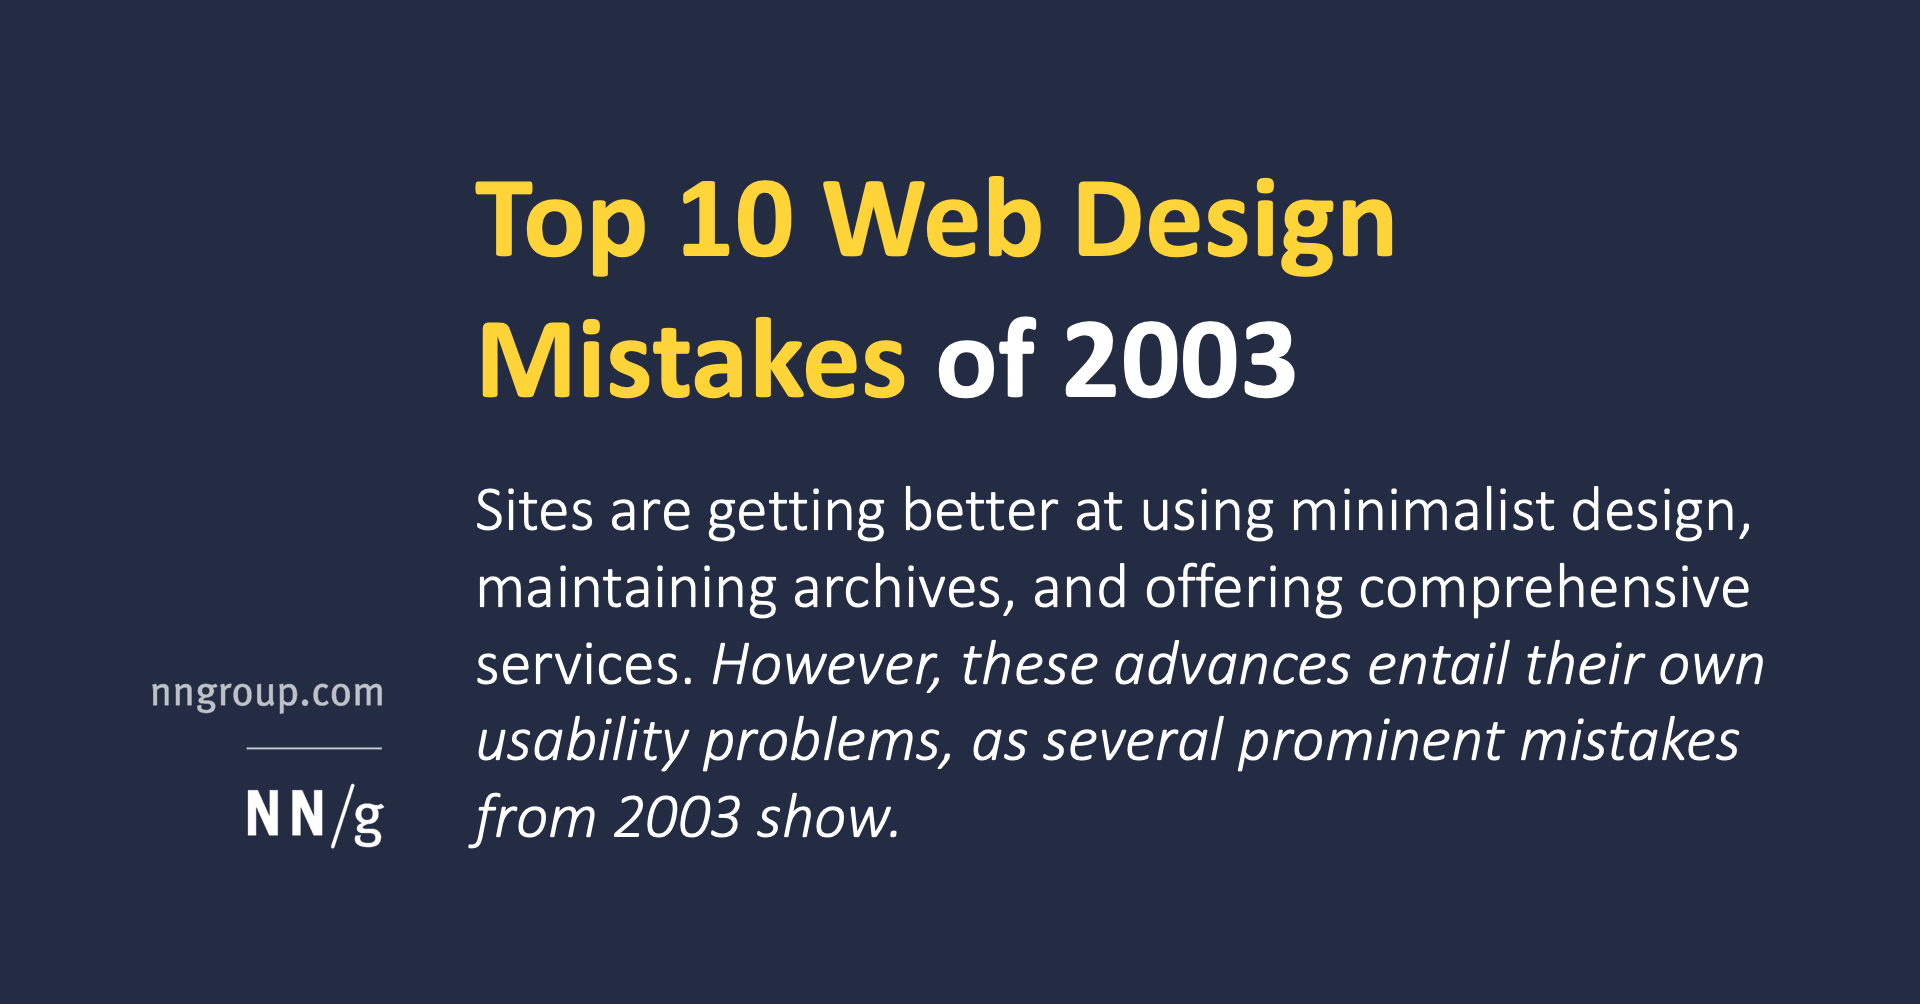 Top 10 Web Design Mistakes Of 2003